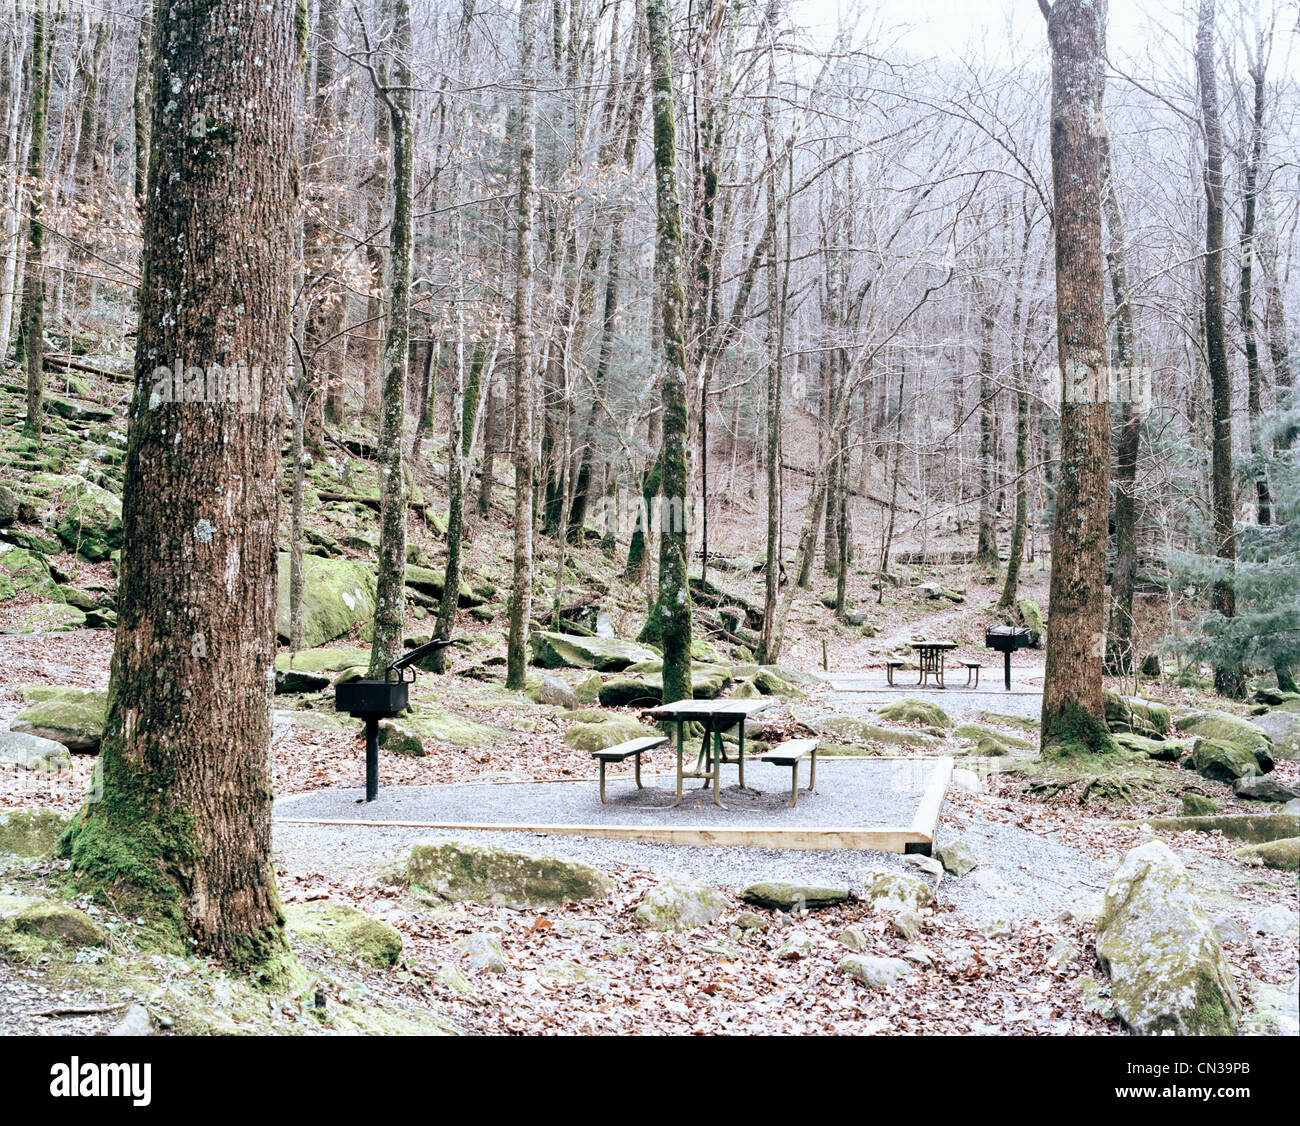 Picnic tables in forest, Pennsylvania, USA - Stock Image